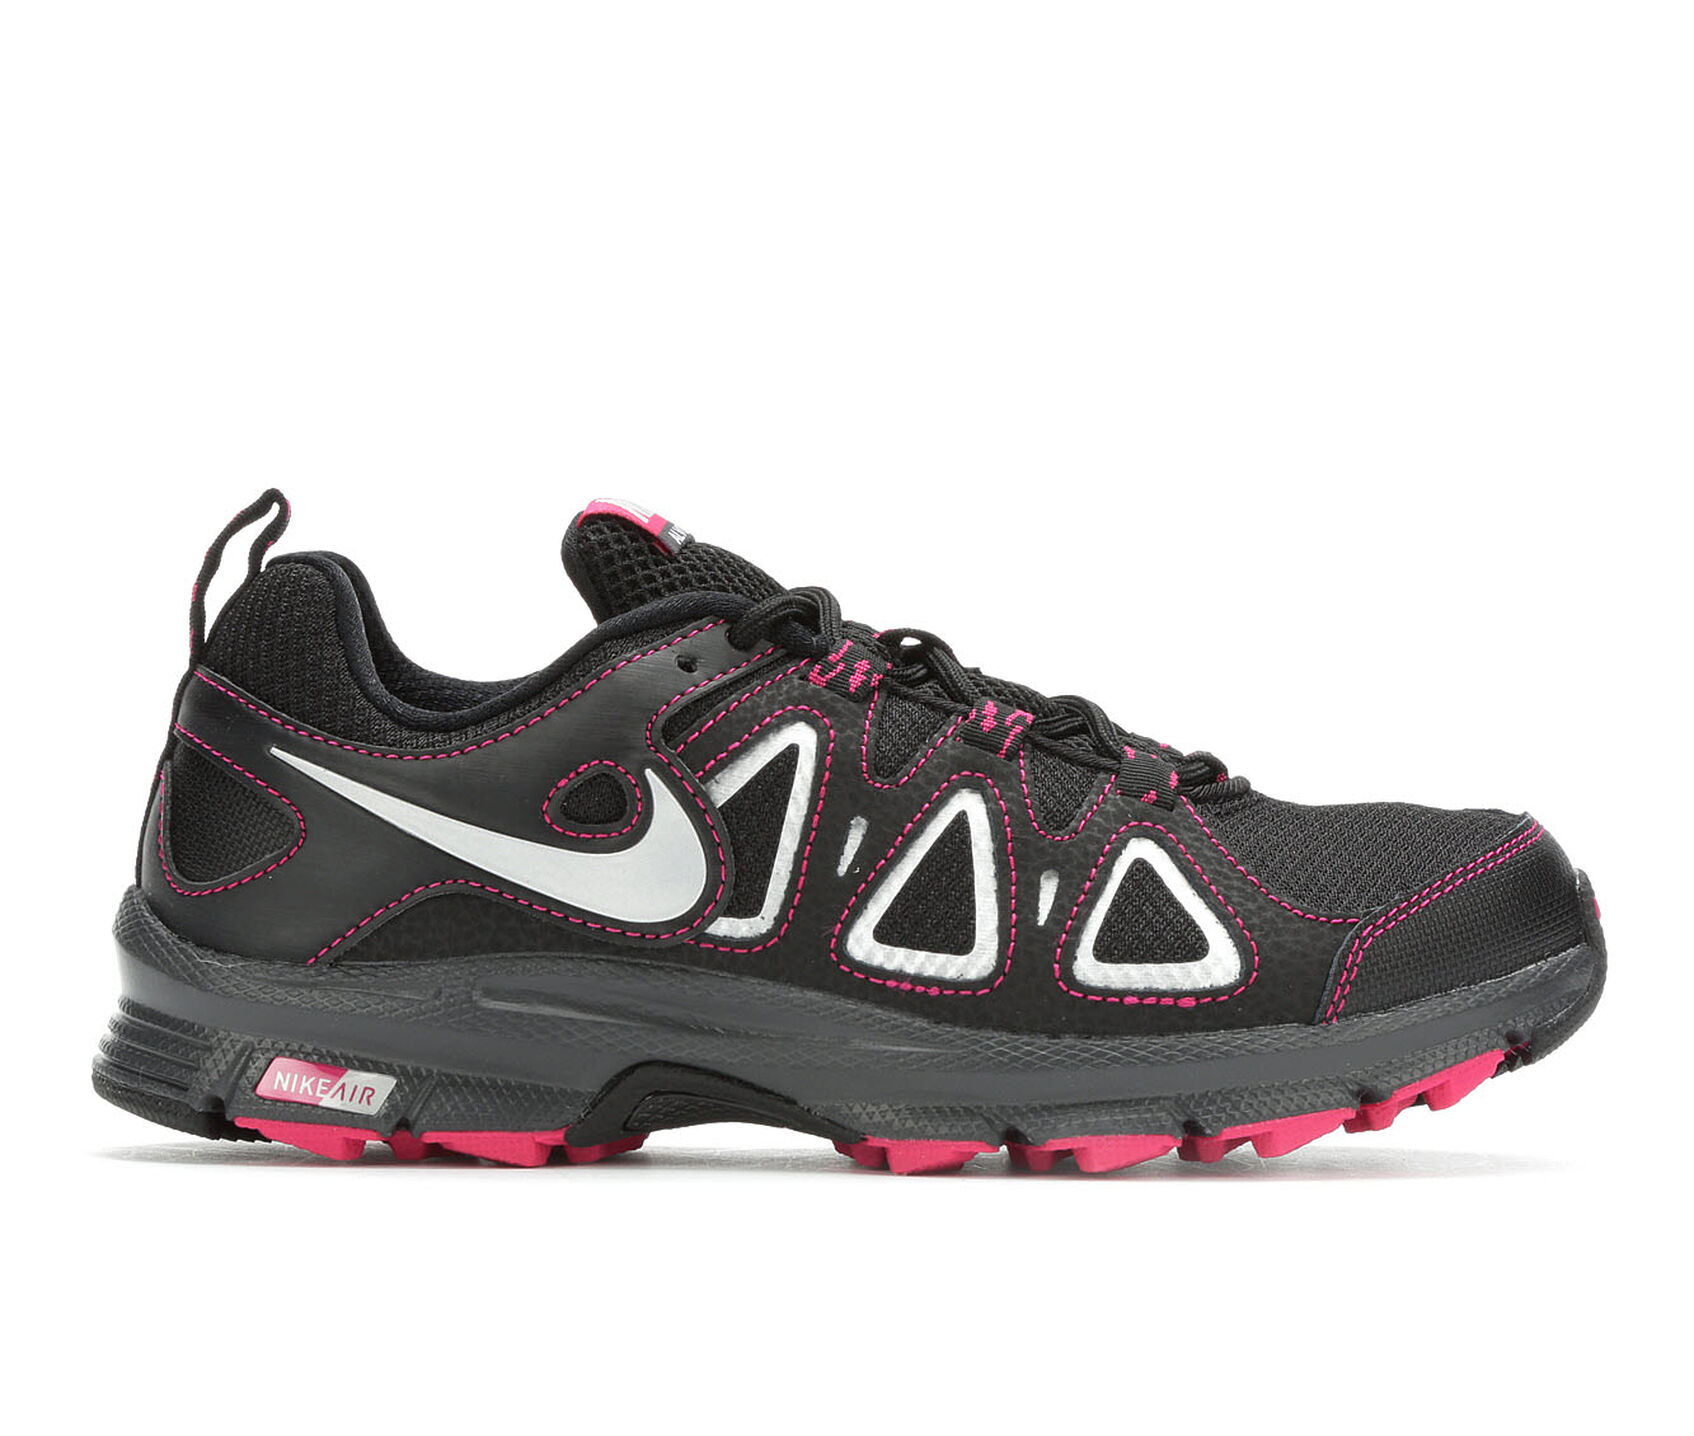 93ed6a1257b ... Nike Alvord 10 Trail Running Shoes. Previous